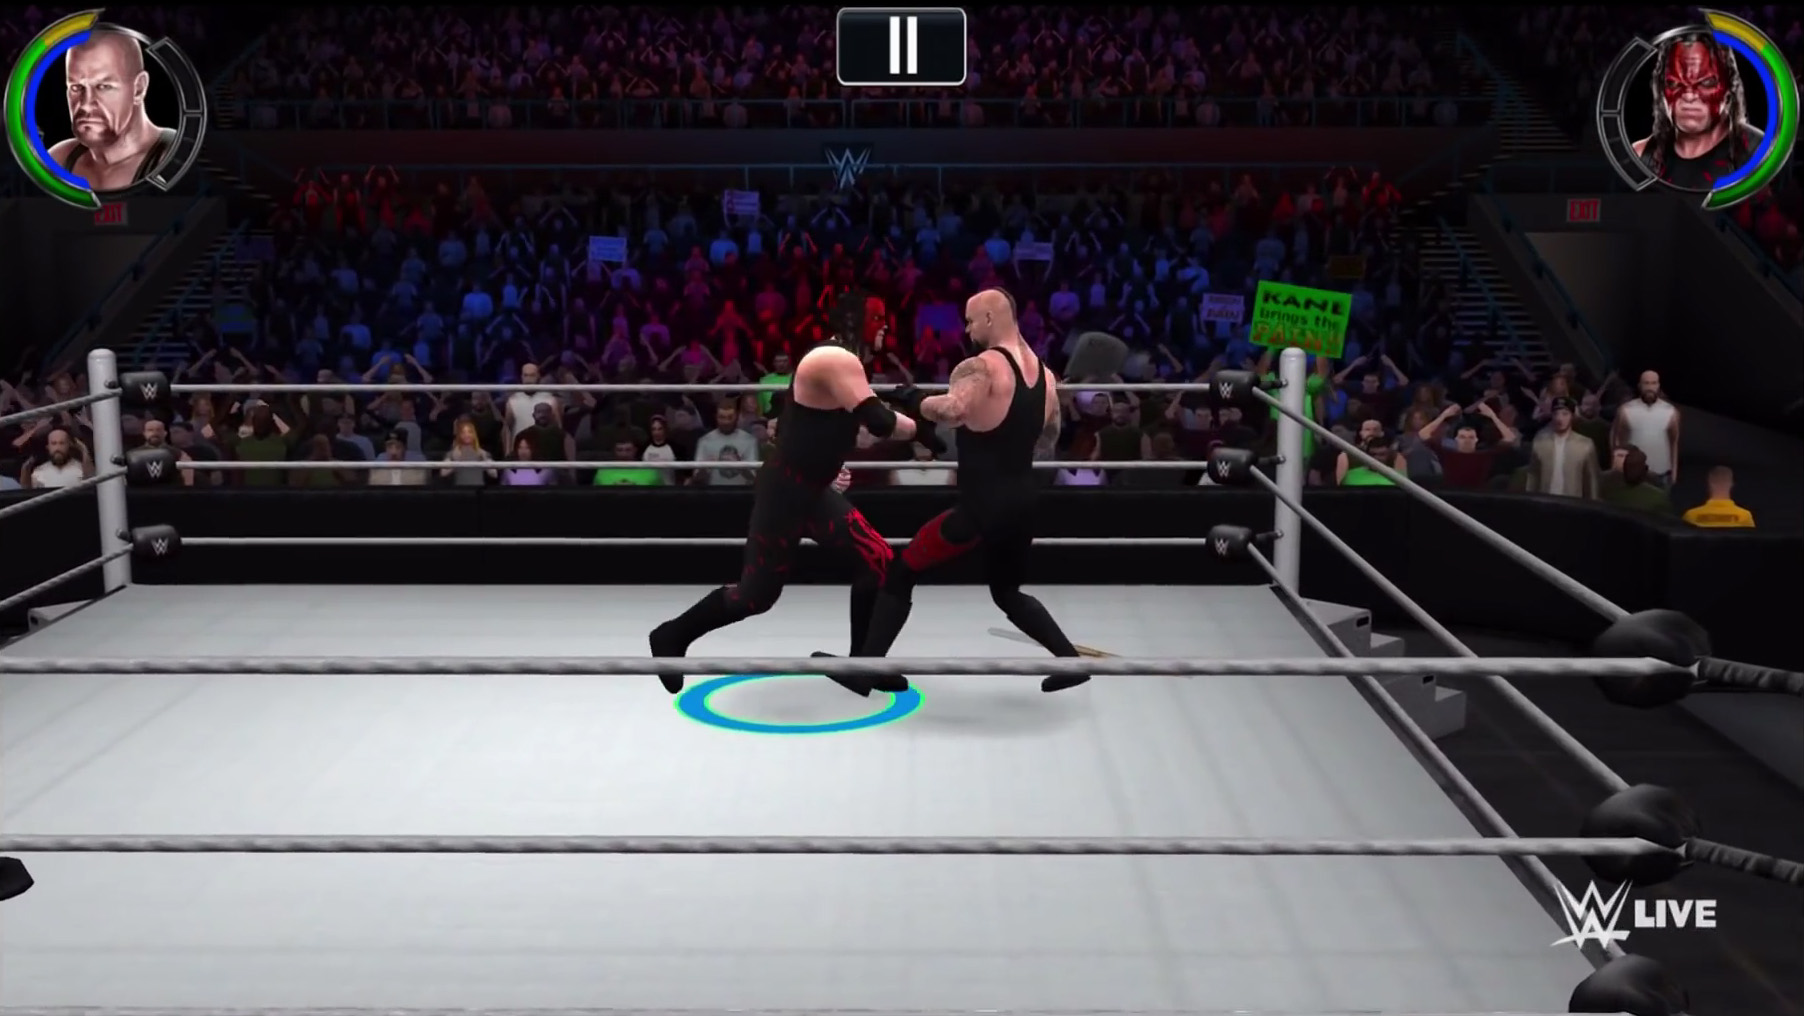 5 Best WWE Video Games To Play in 2015 | GAMERS DECIDE